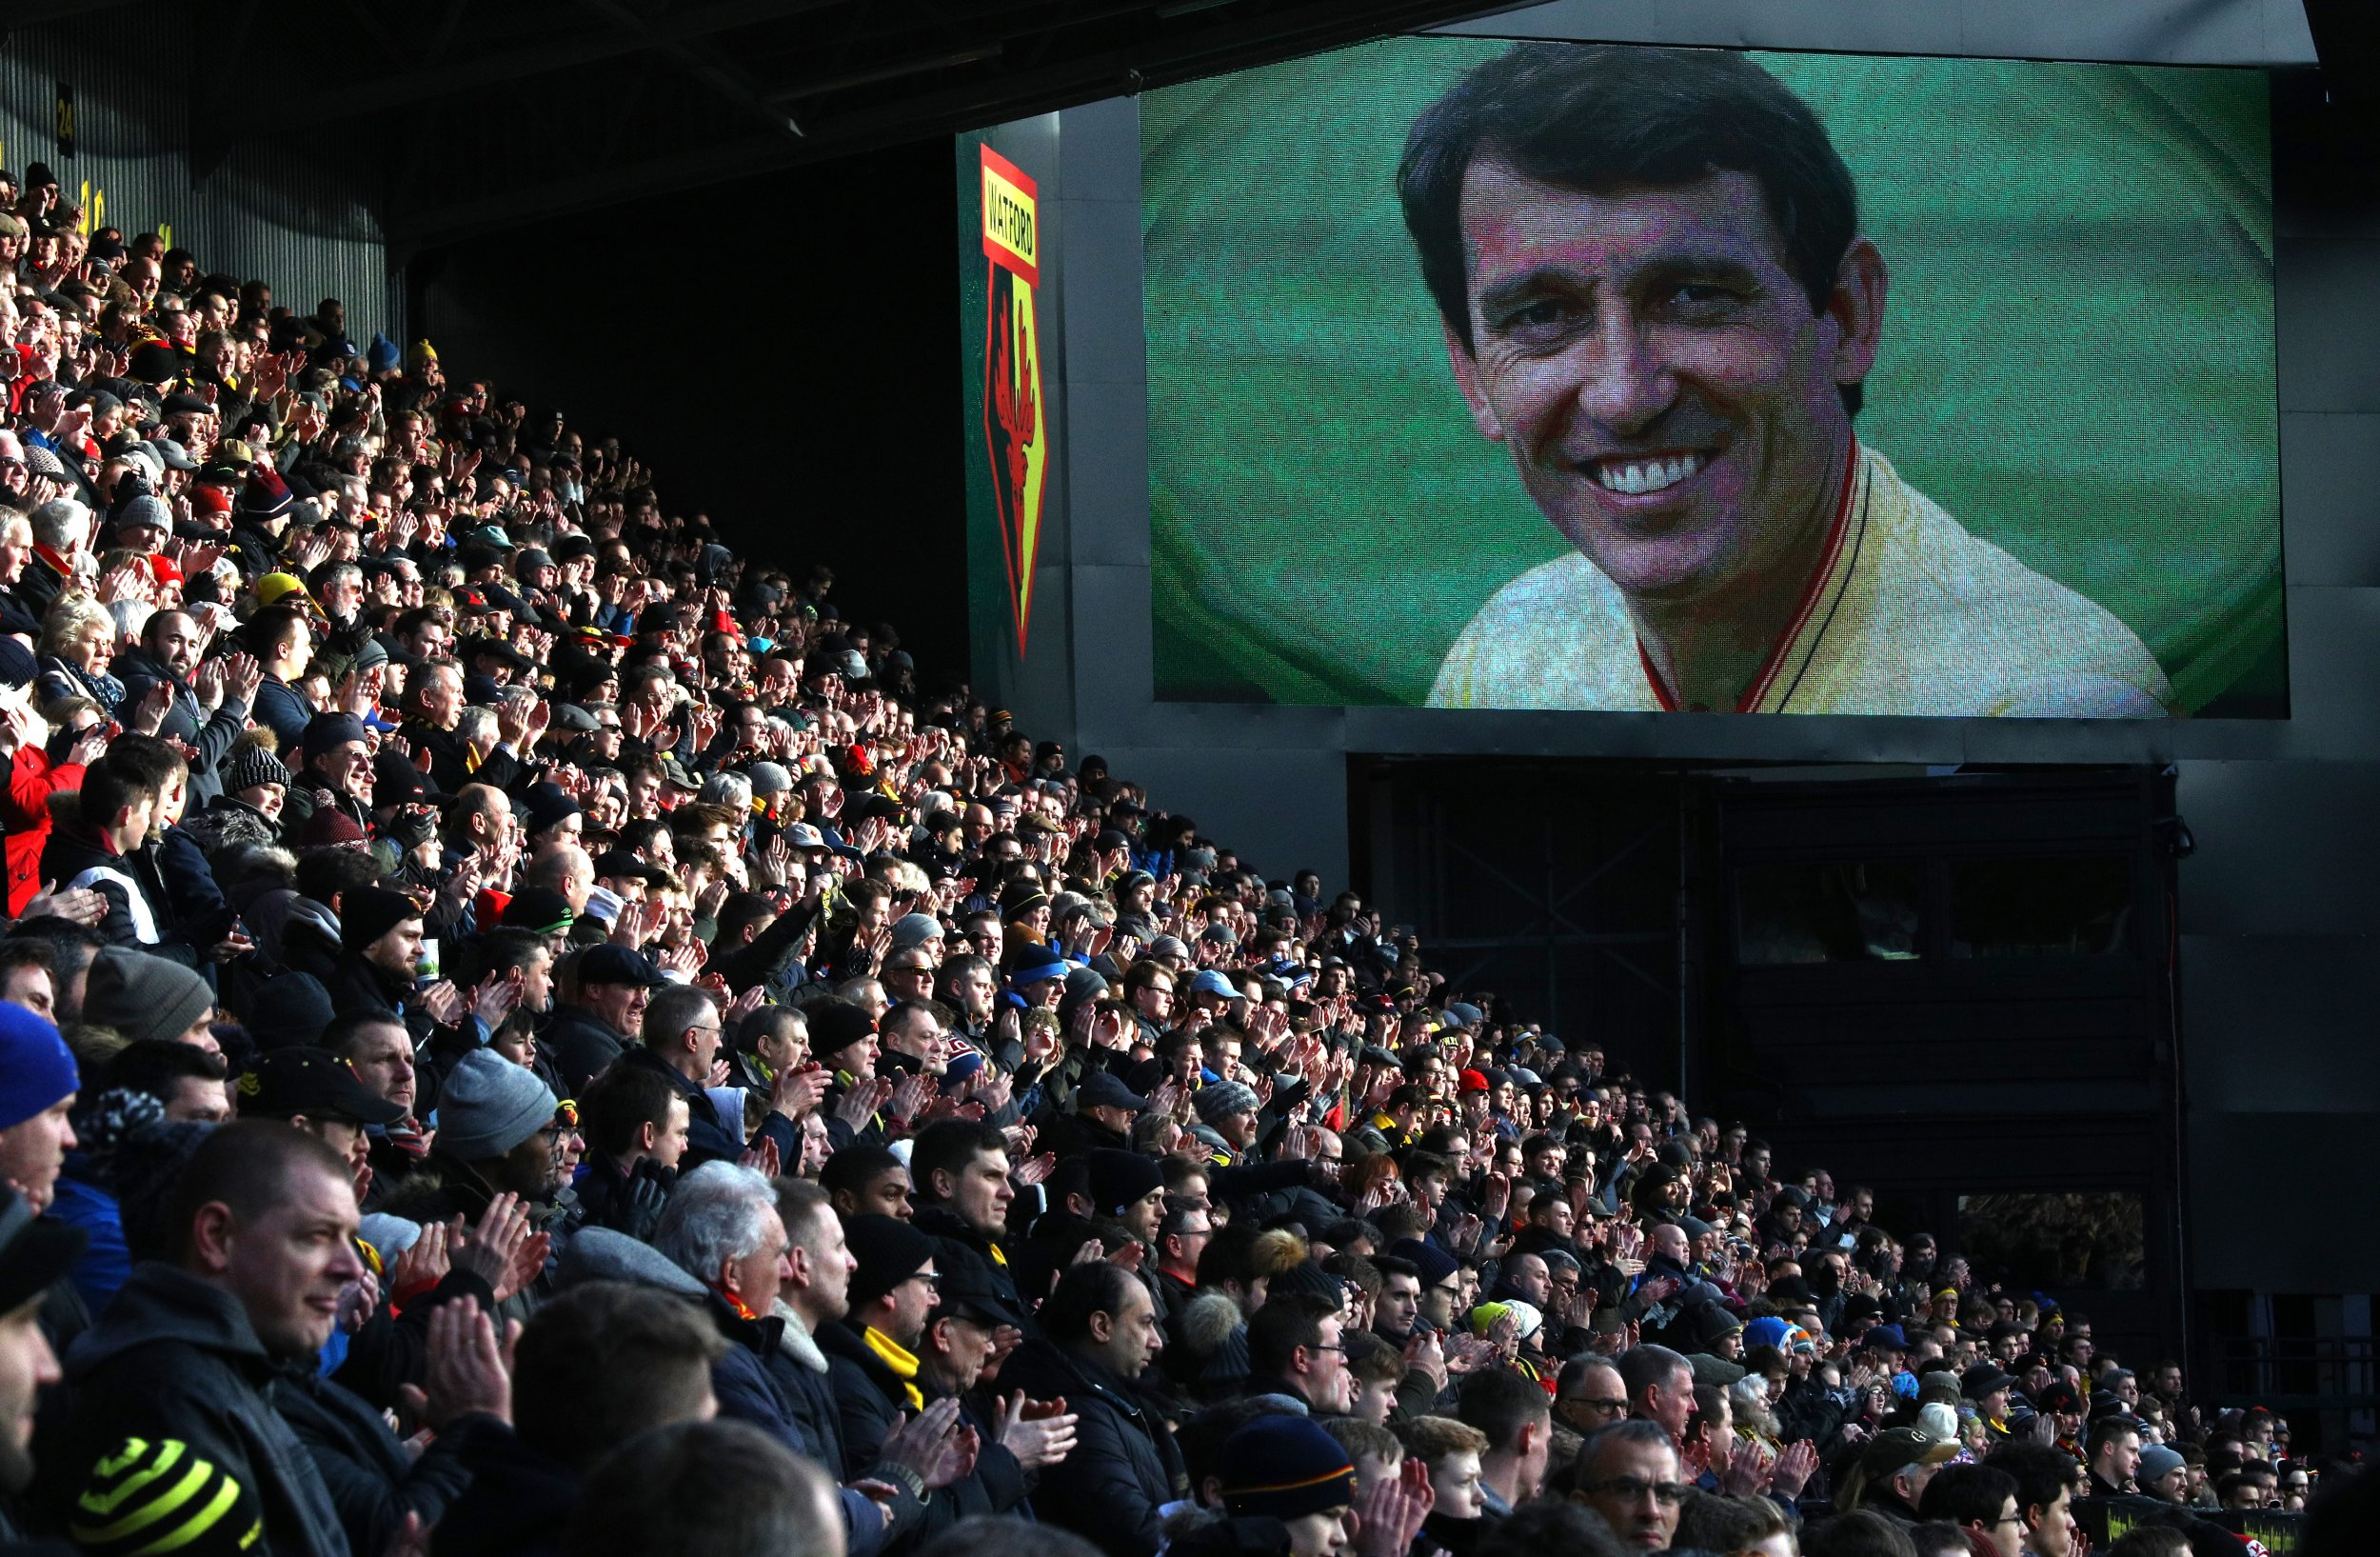 An image of Graham Taylor, the former Watford manager.